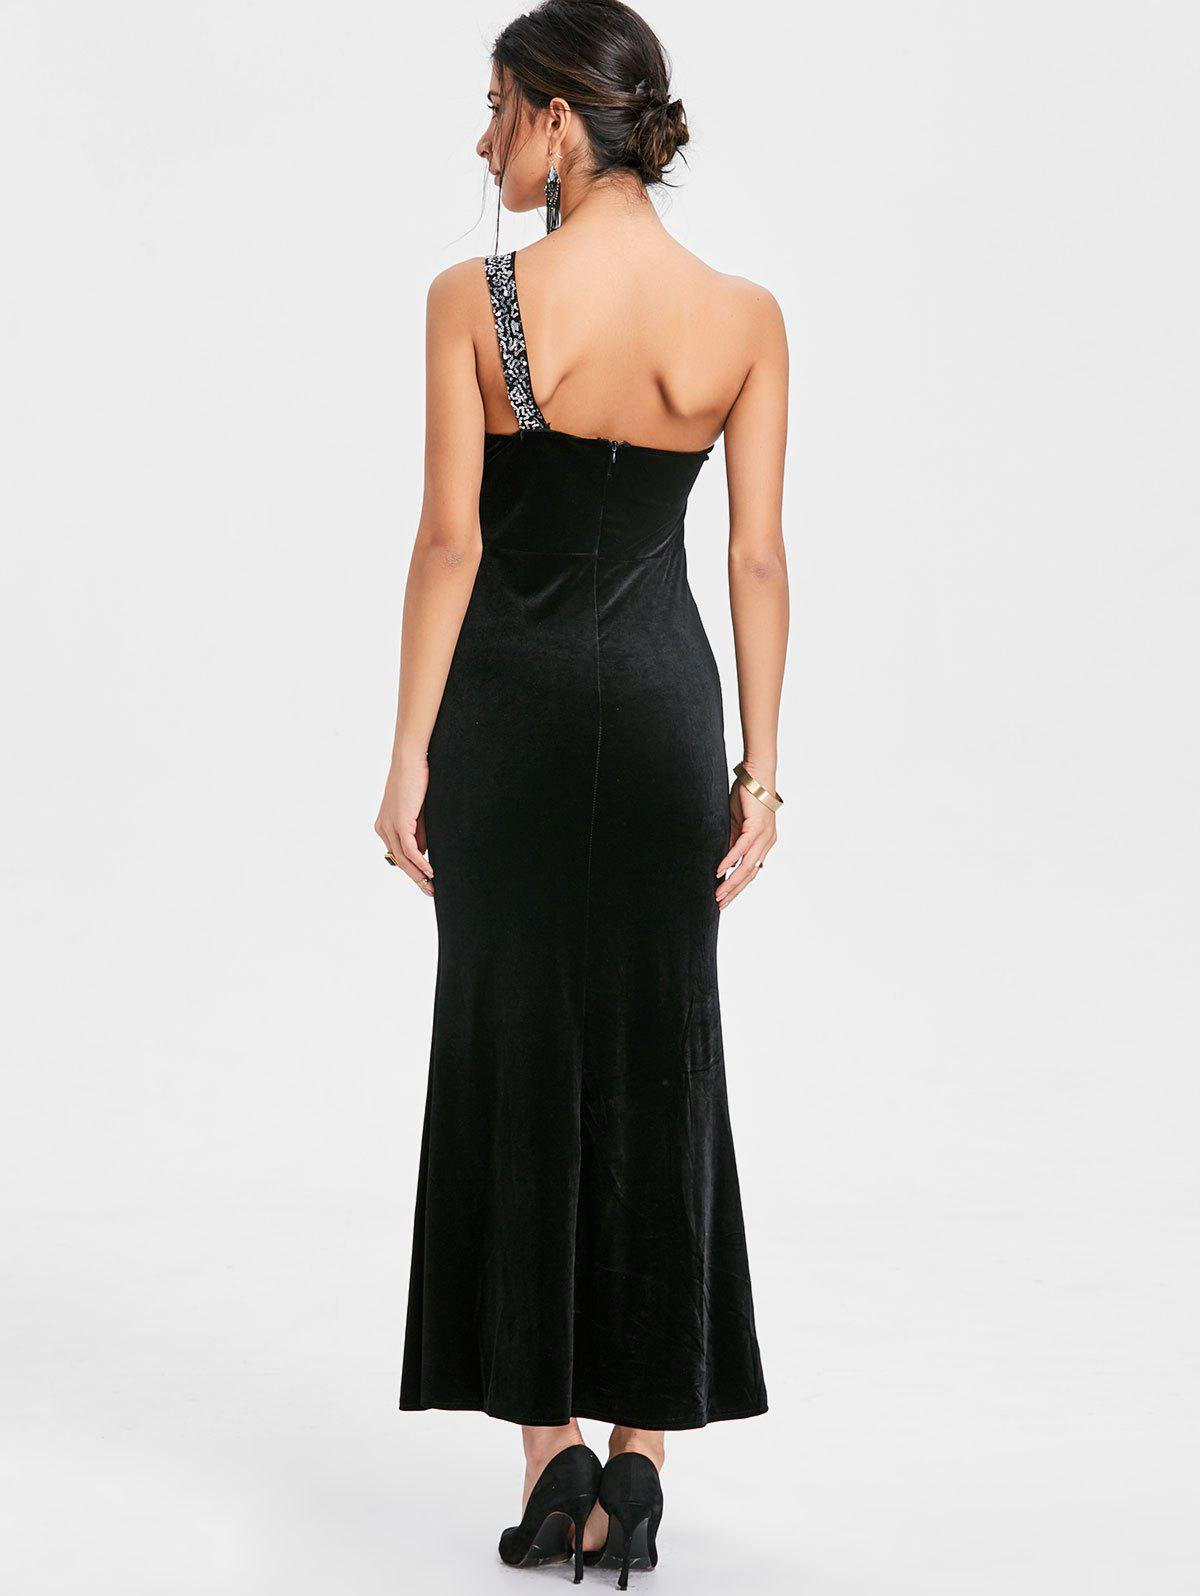 Sequin One Shoulder Maxi Party Dress - BLACK ONE SIZE